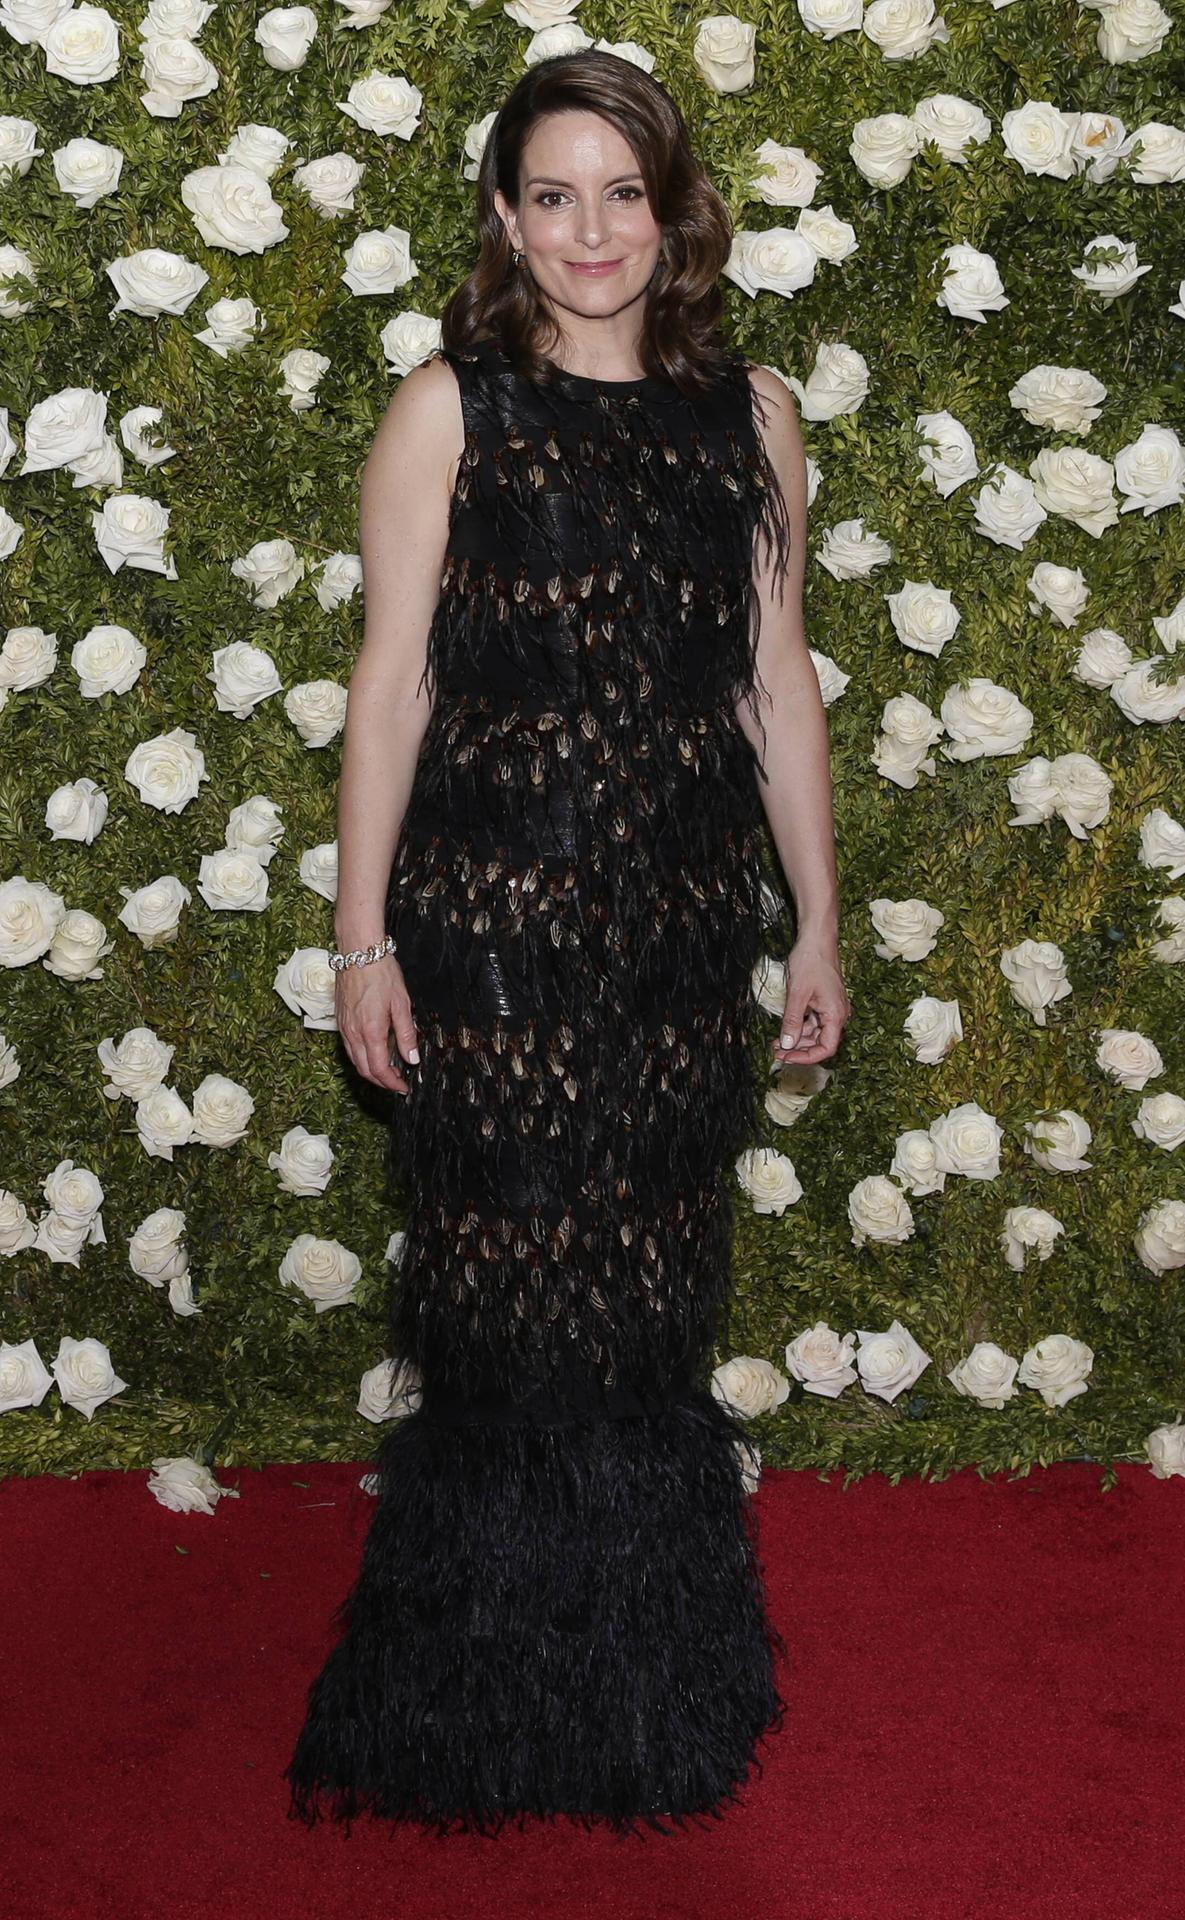 Tina Fey arrives on the red carpet at the 71st Annual Tony Awards at Radio City Music Hall on June 1